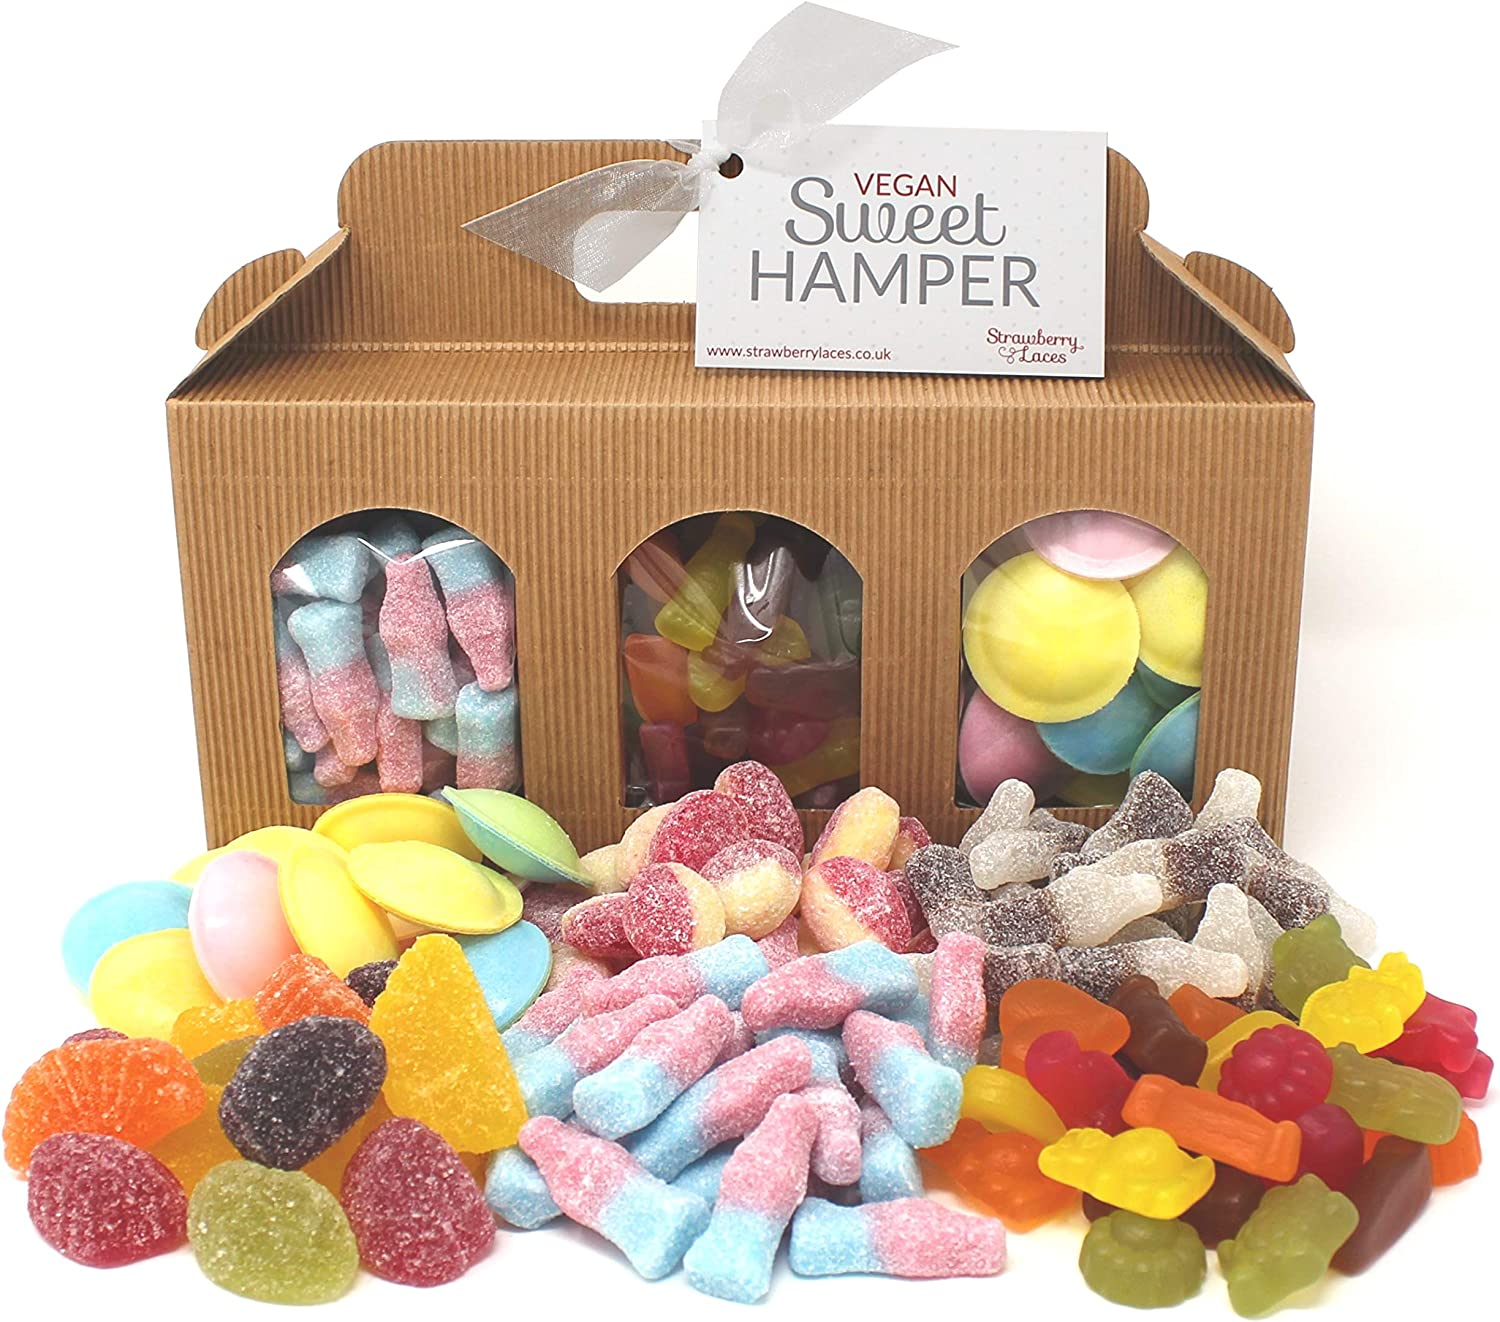 Vegan Sweet Hamper Box – Great Vegan & Vegetarian Gift